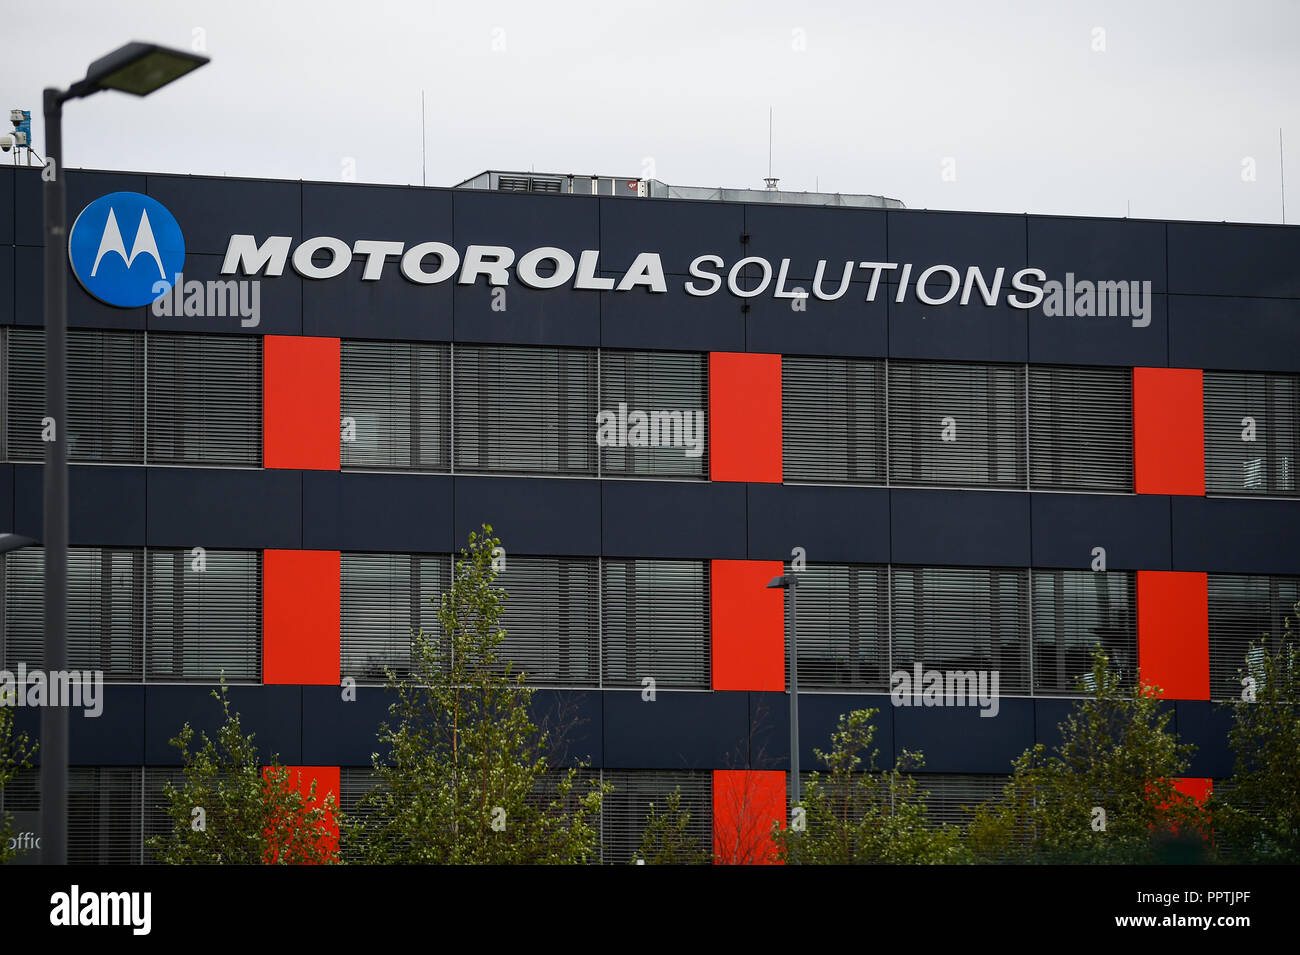 Image result for Motorola Poland